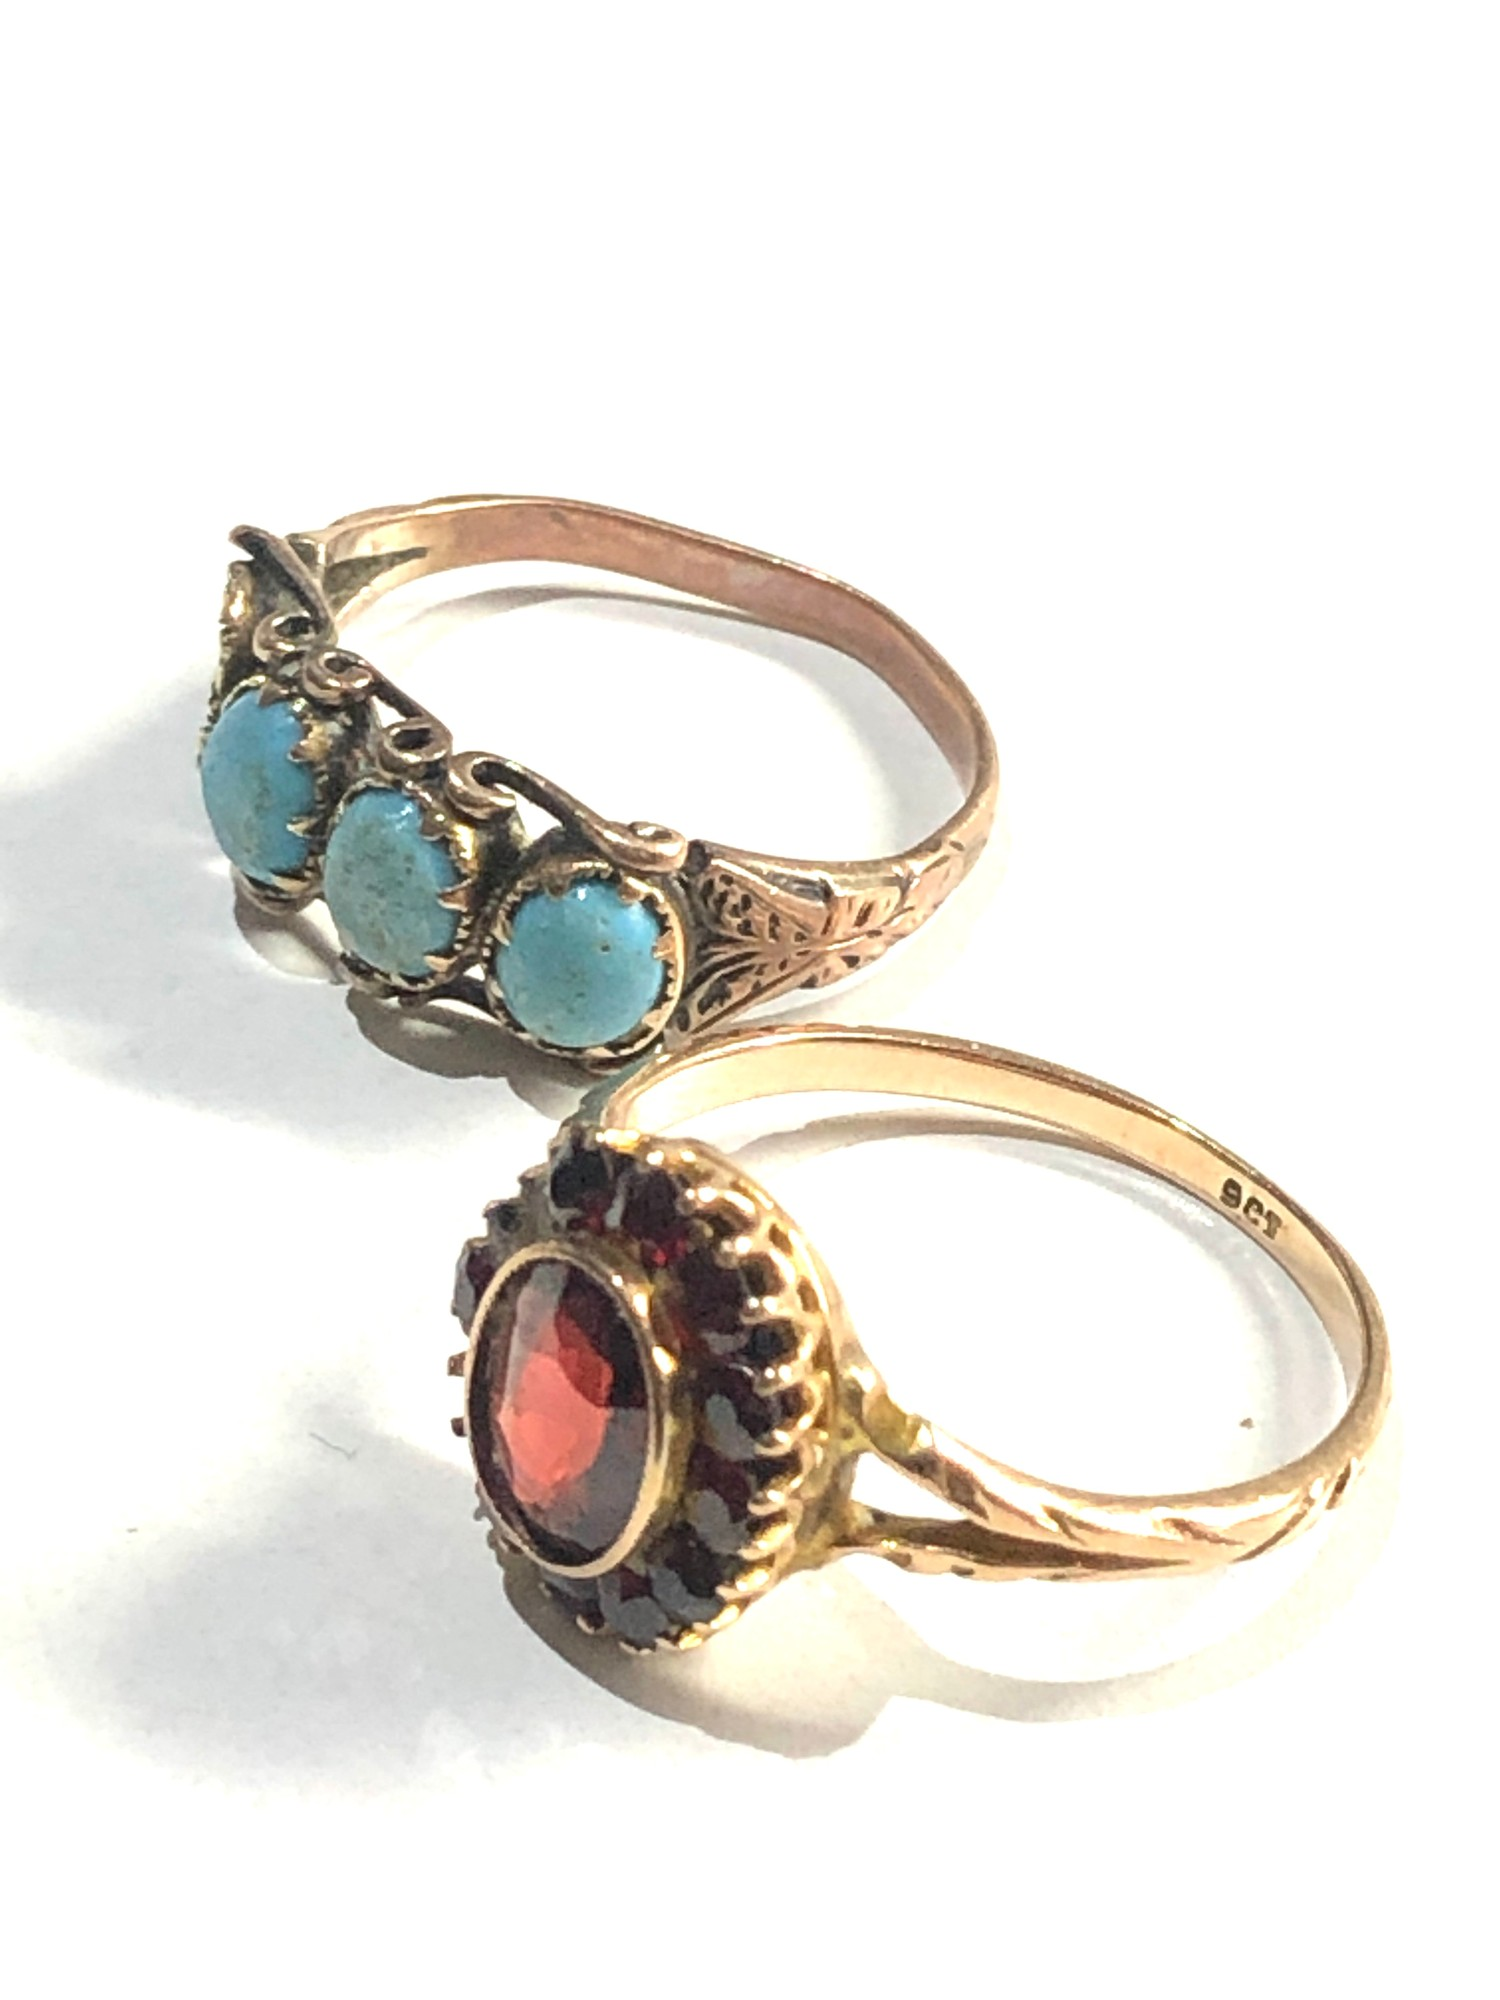 2 x Antique 9ct gold rings inc. garnet, turquoise *one stone missing - Image 2 of 3